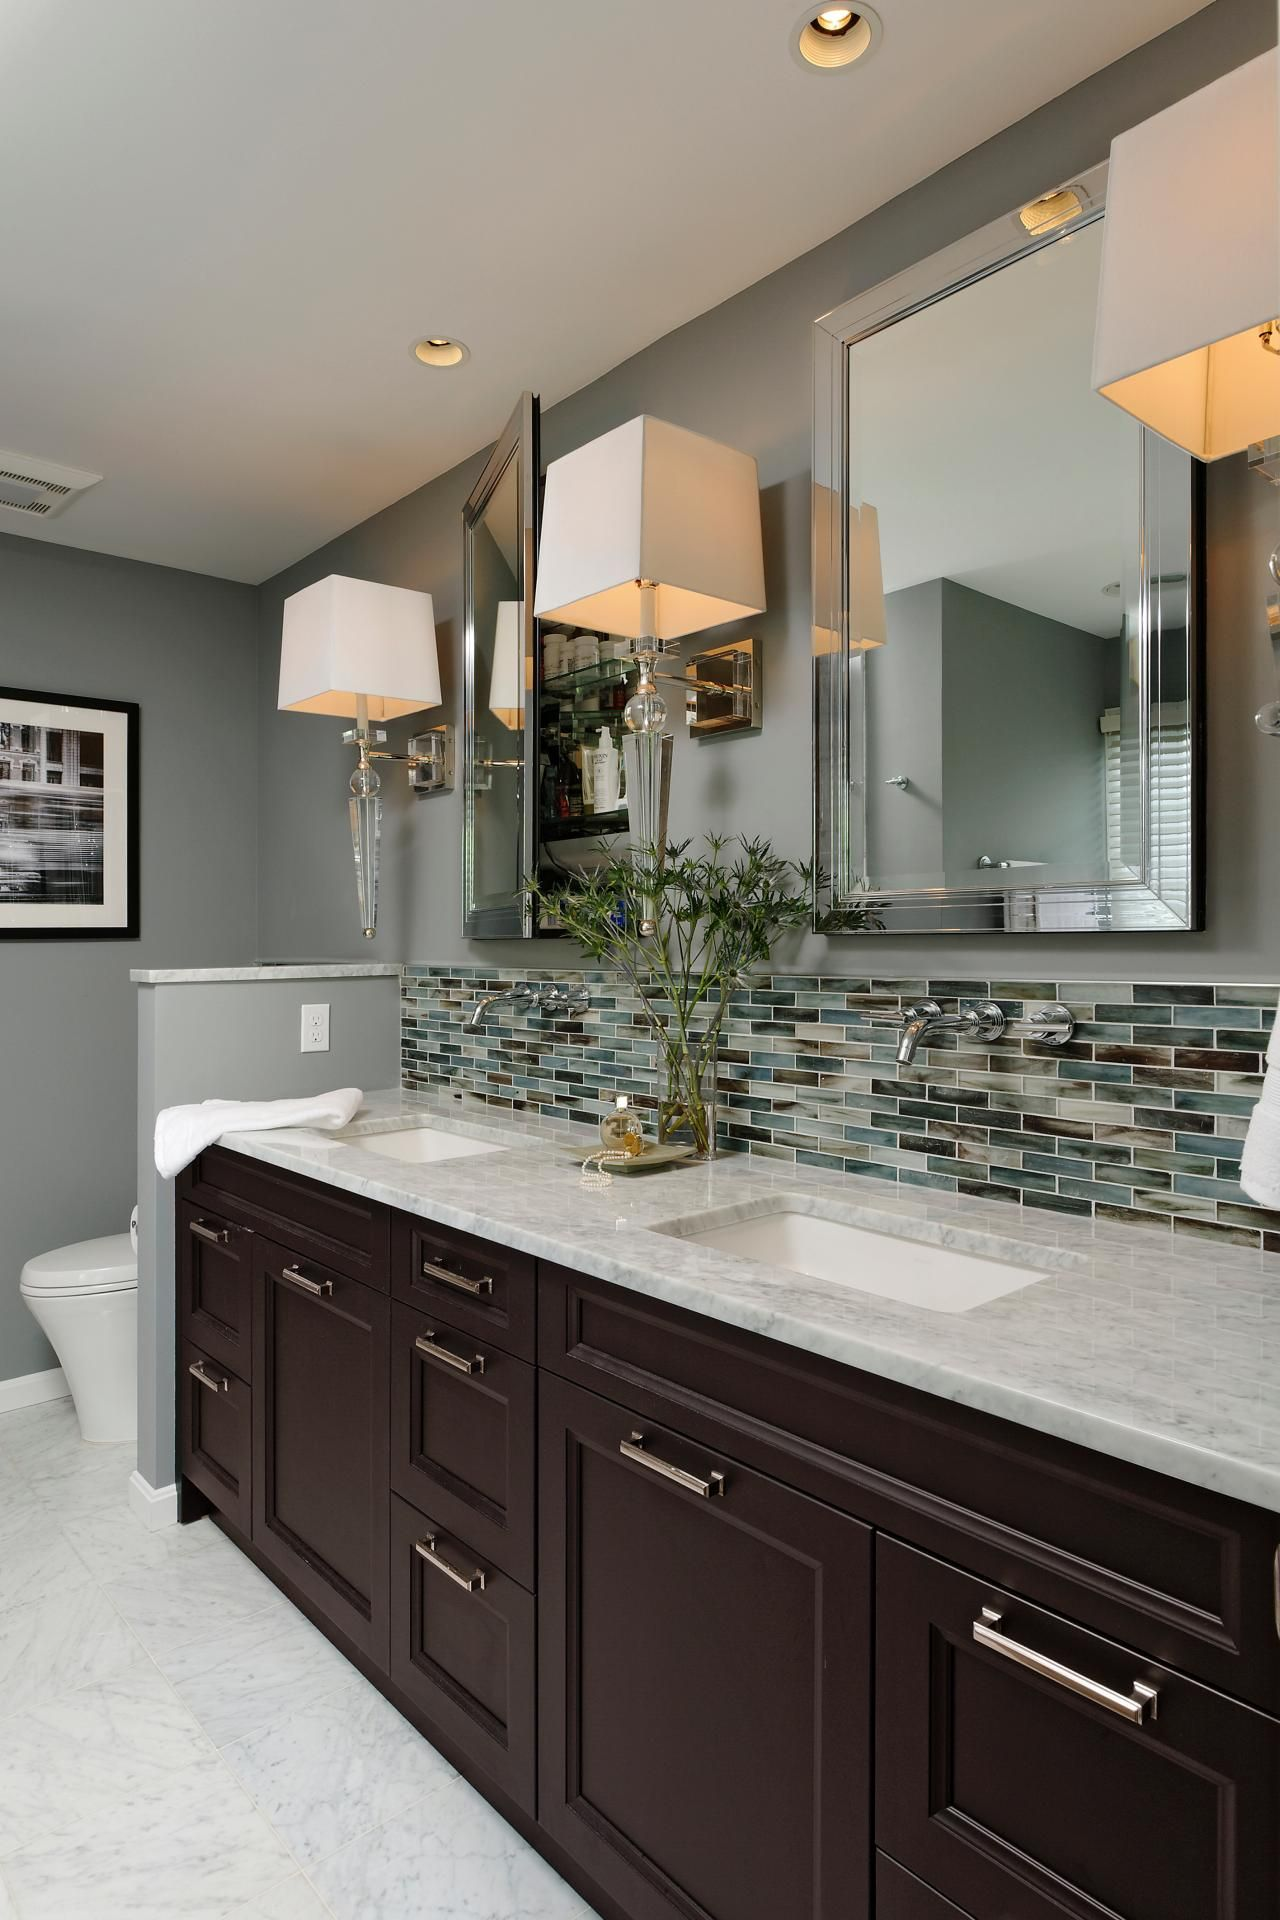 Bathroom Design Ideas Gray this gray contemporary bathroom features a double-vanity design